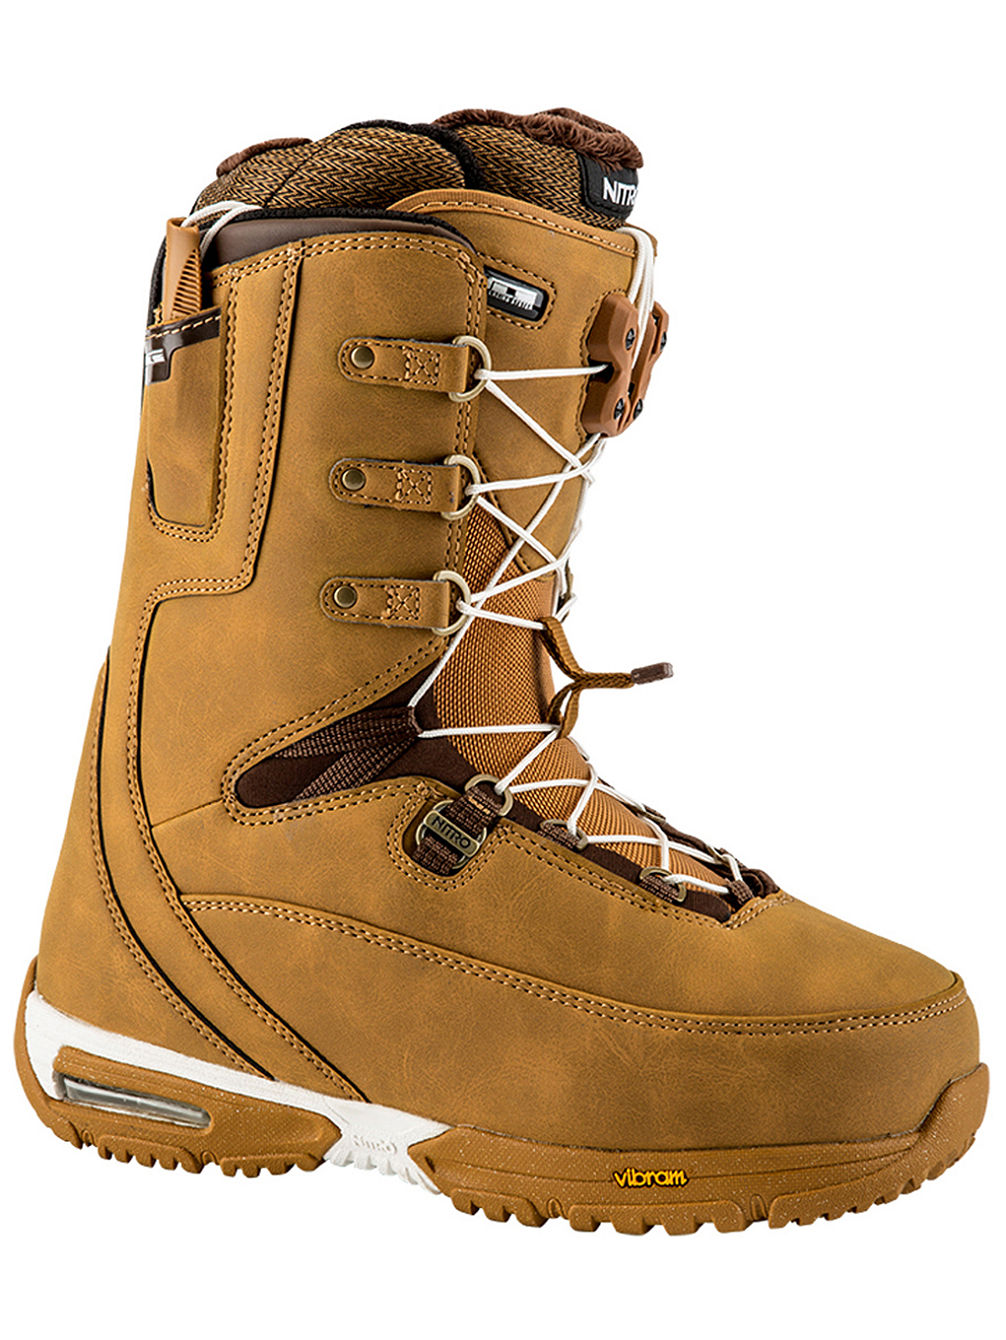 Faint Tls 2018 Snowboardboots